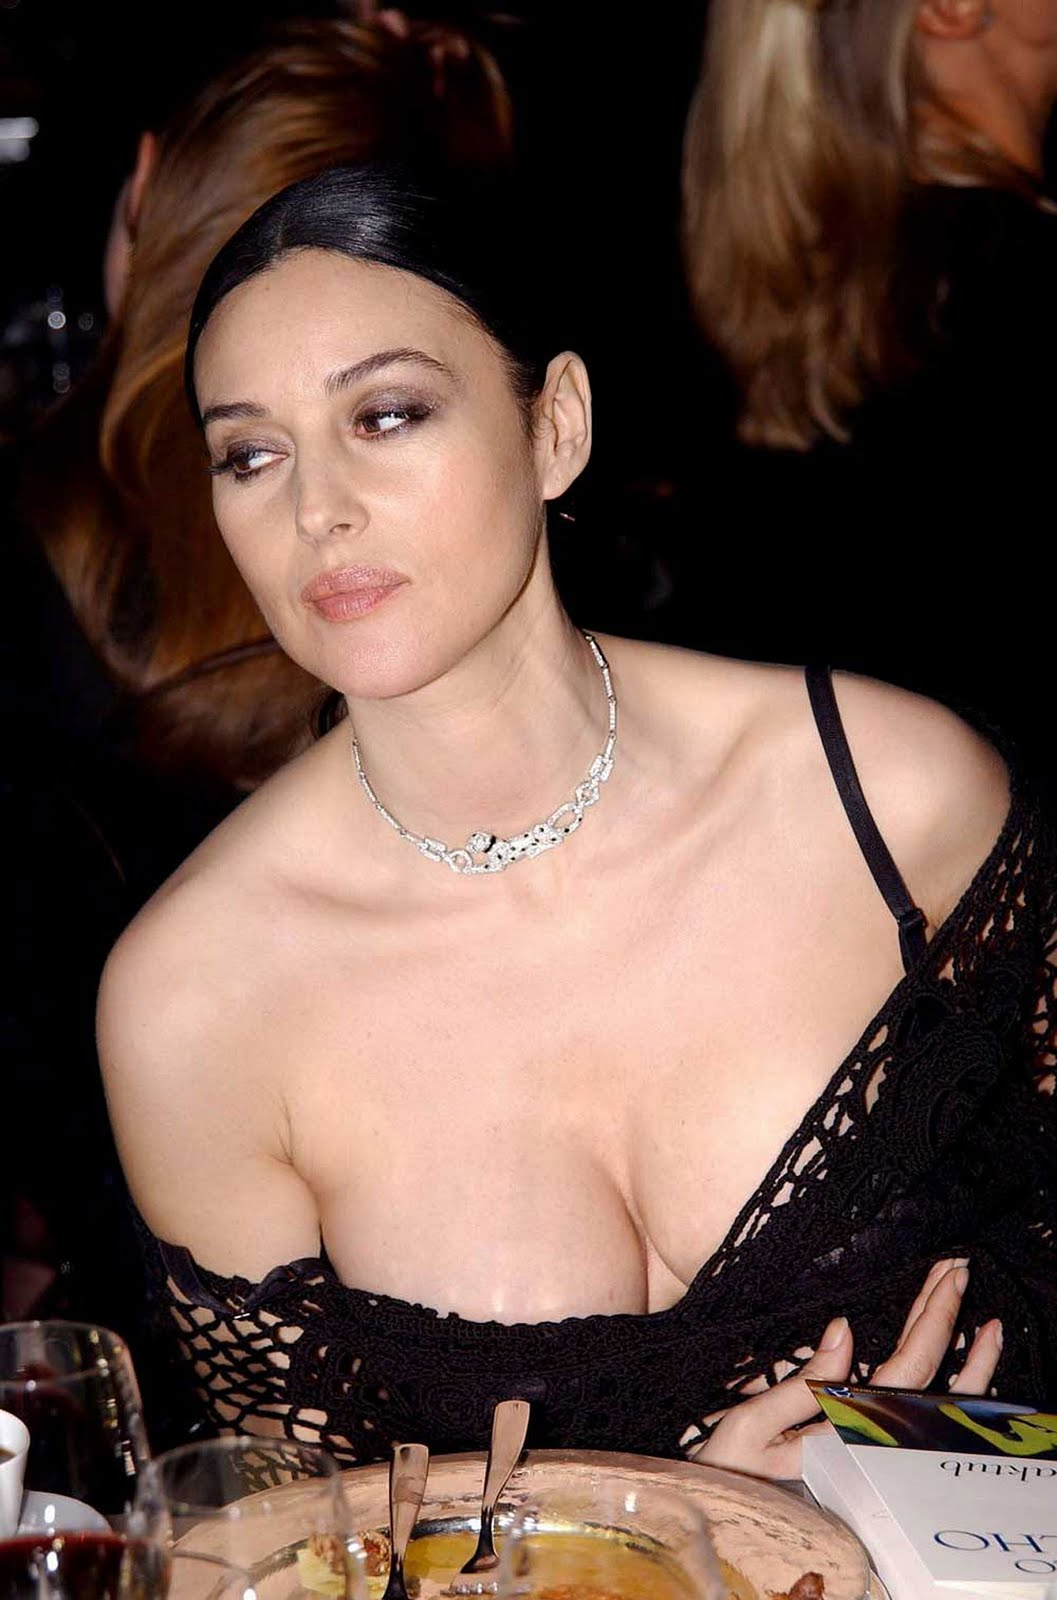 Monica bellucci nude pic images 80